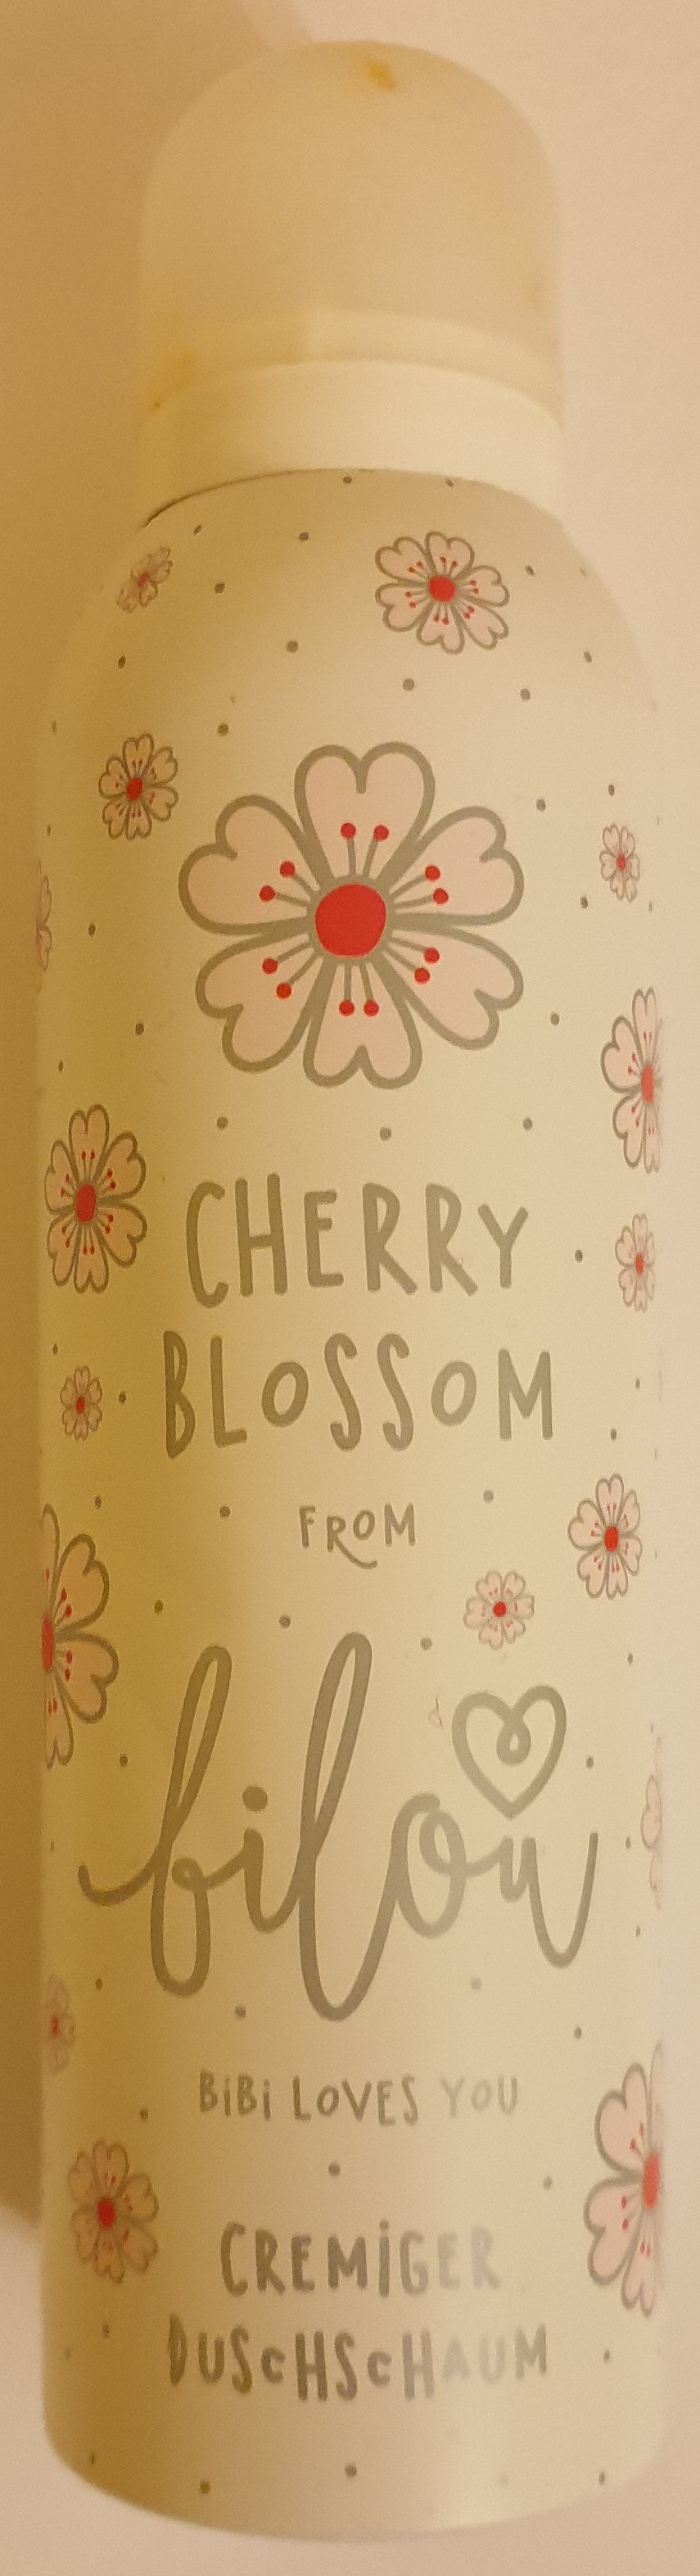 Cherry blossom - Product